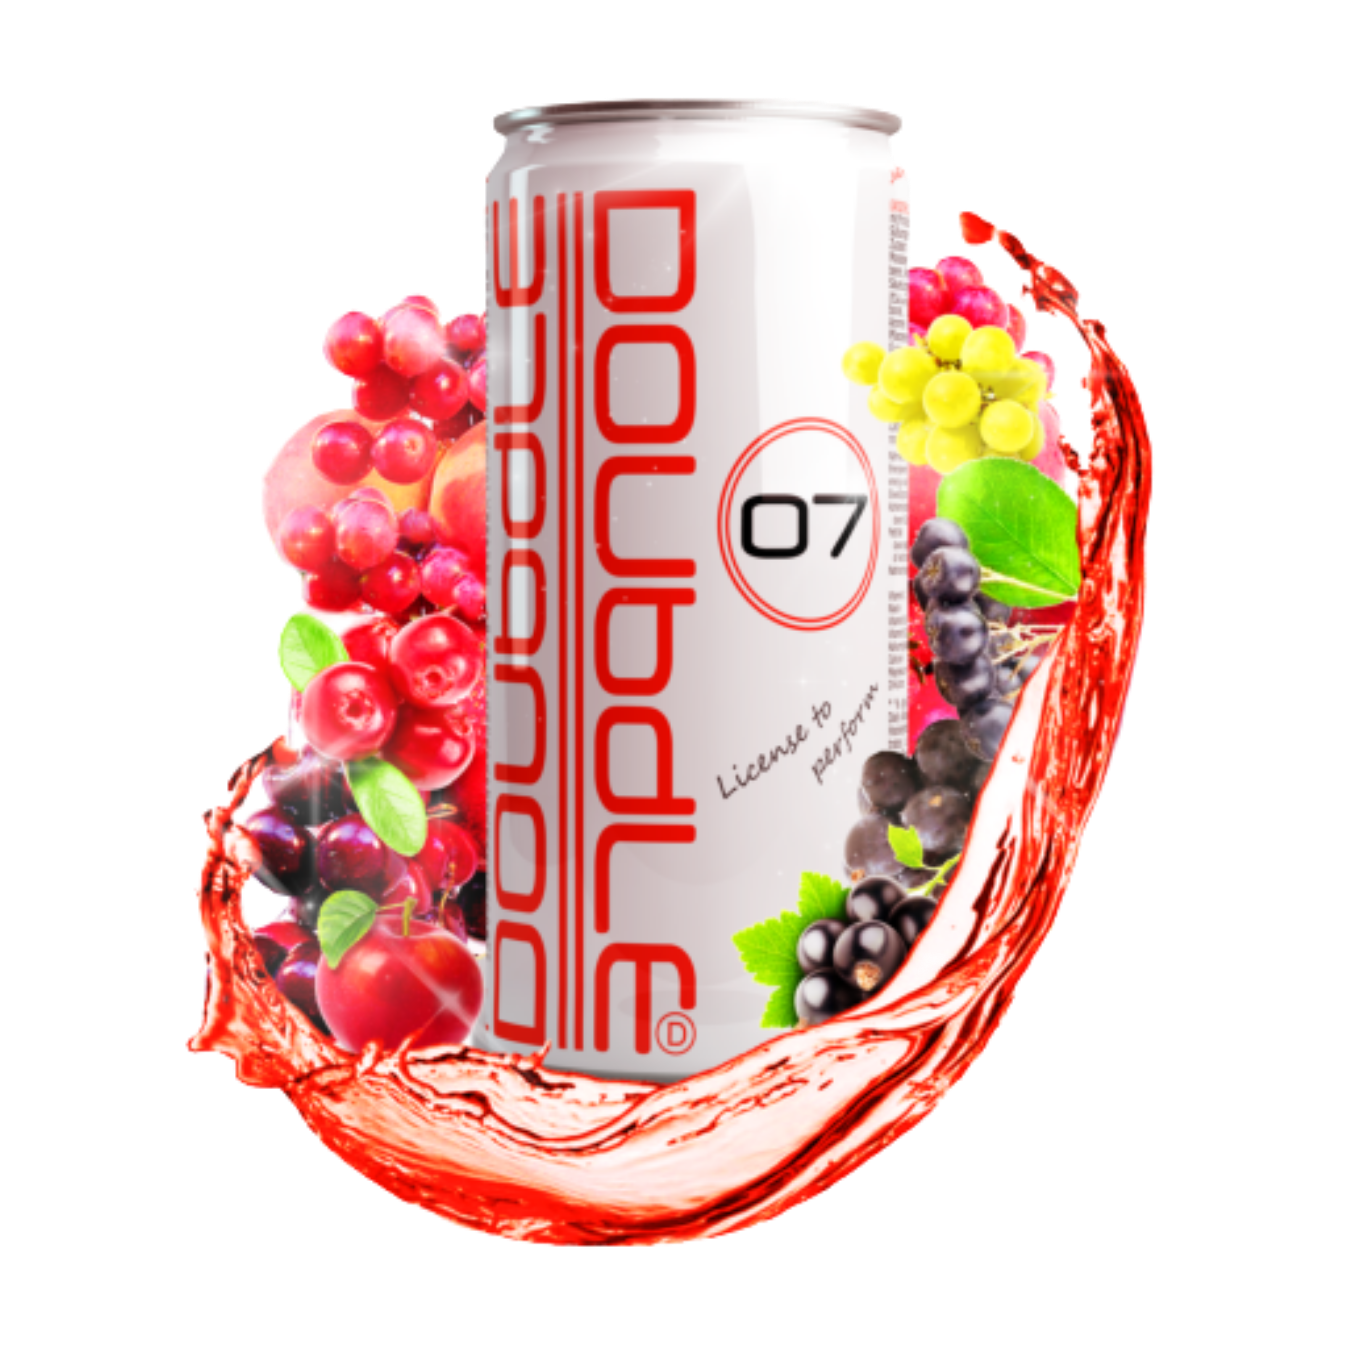 Doubdle with fruity background